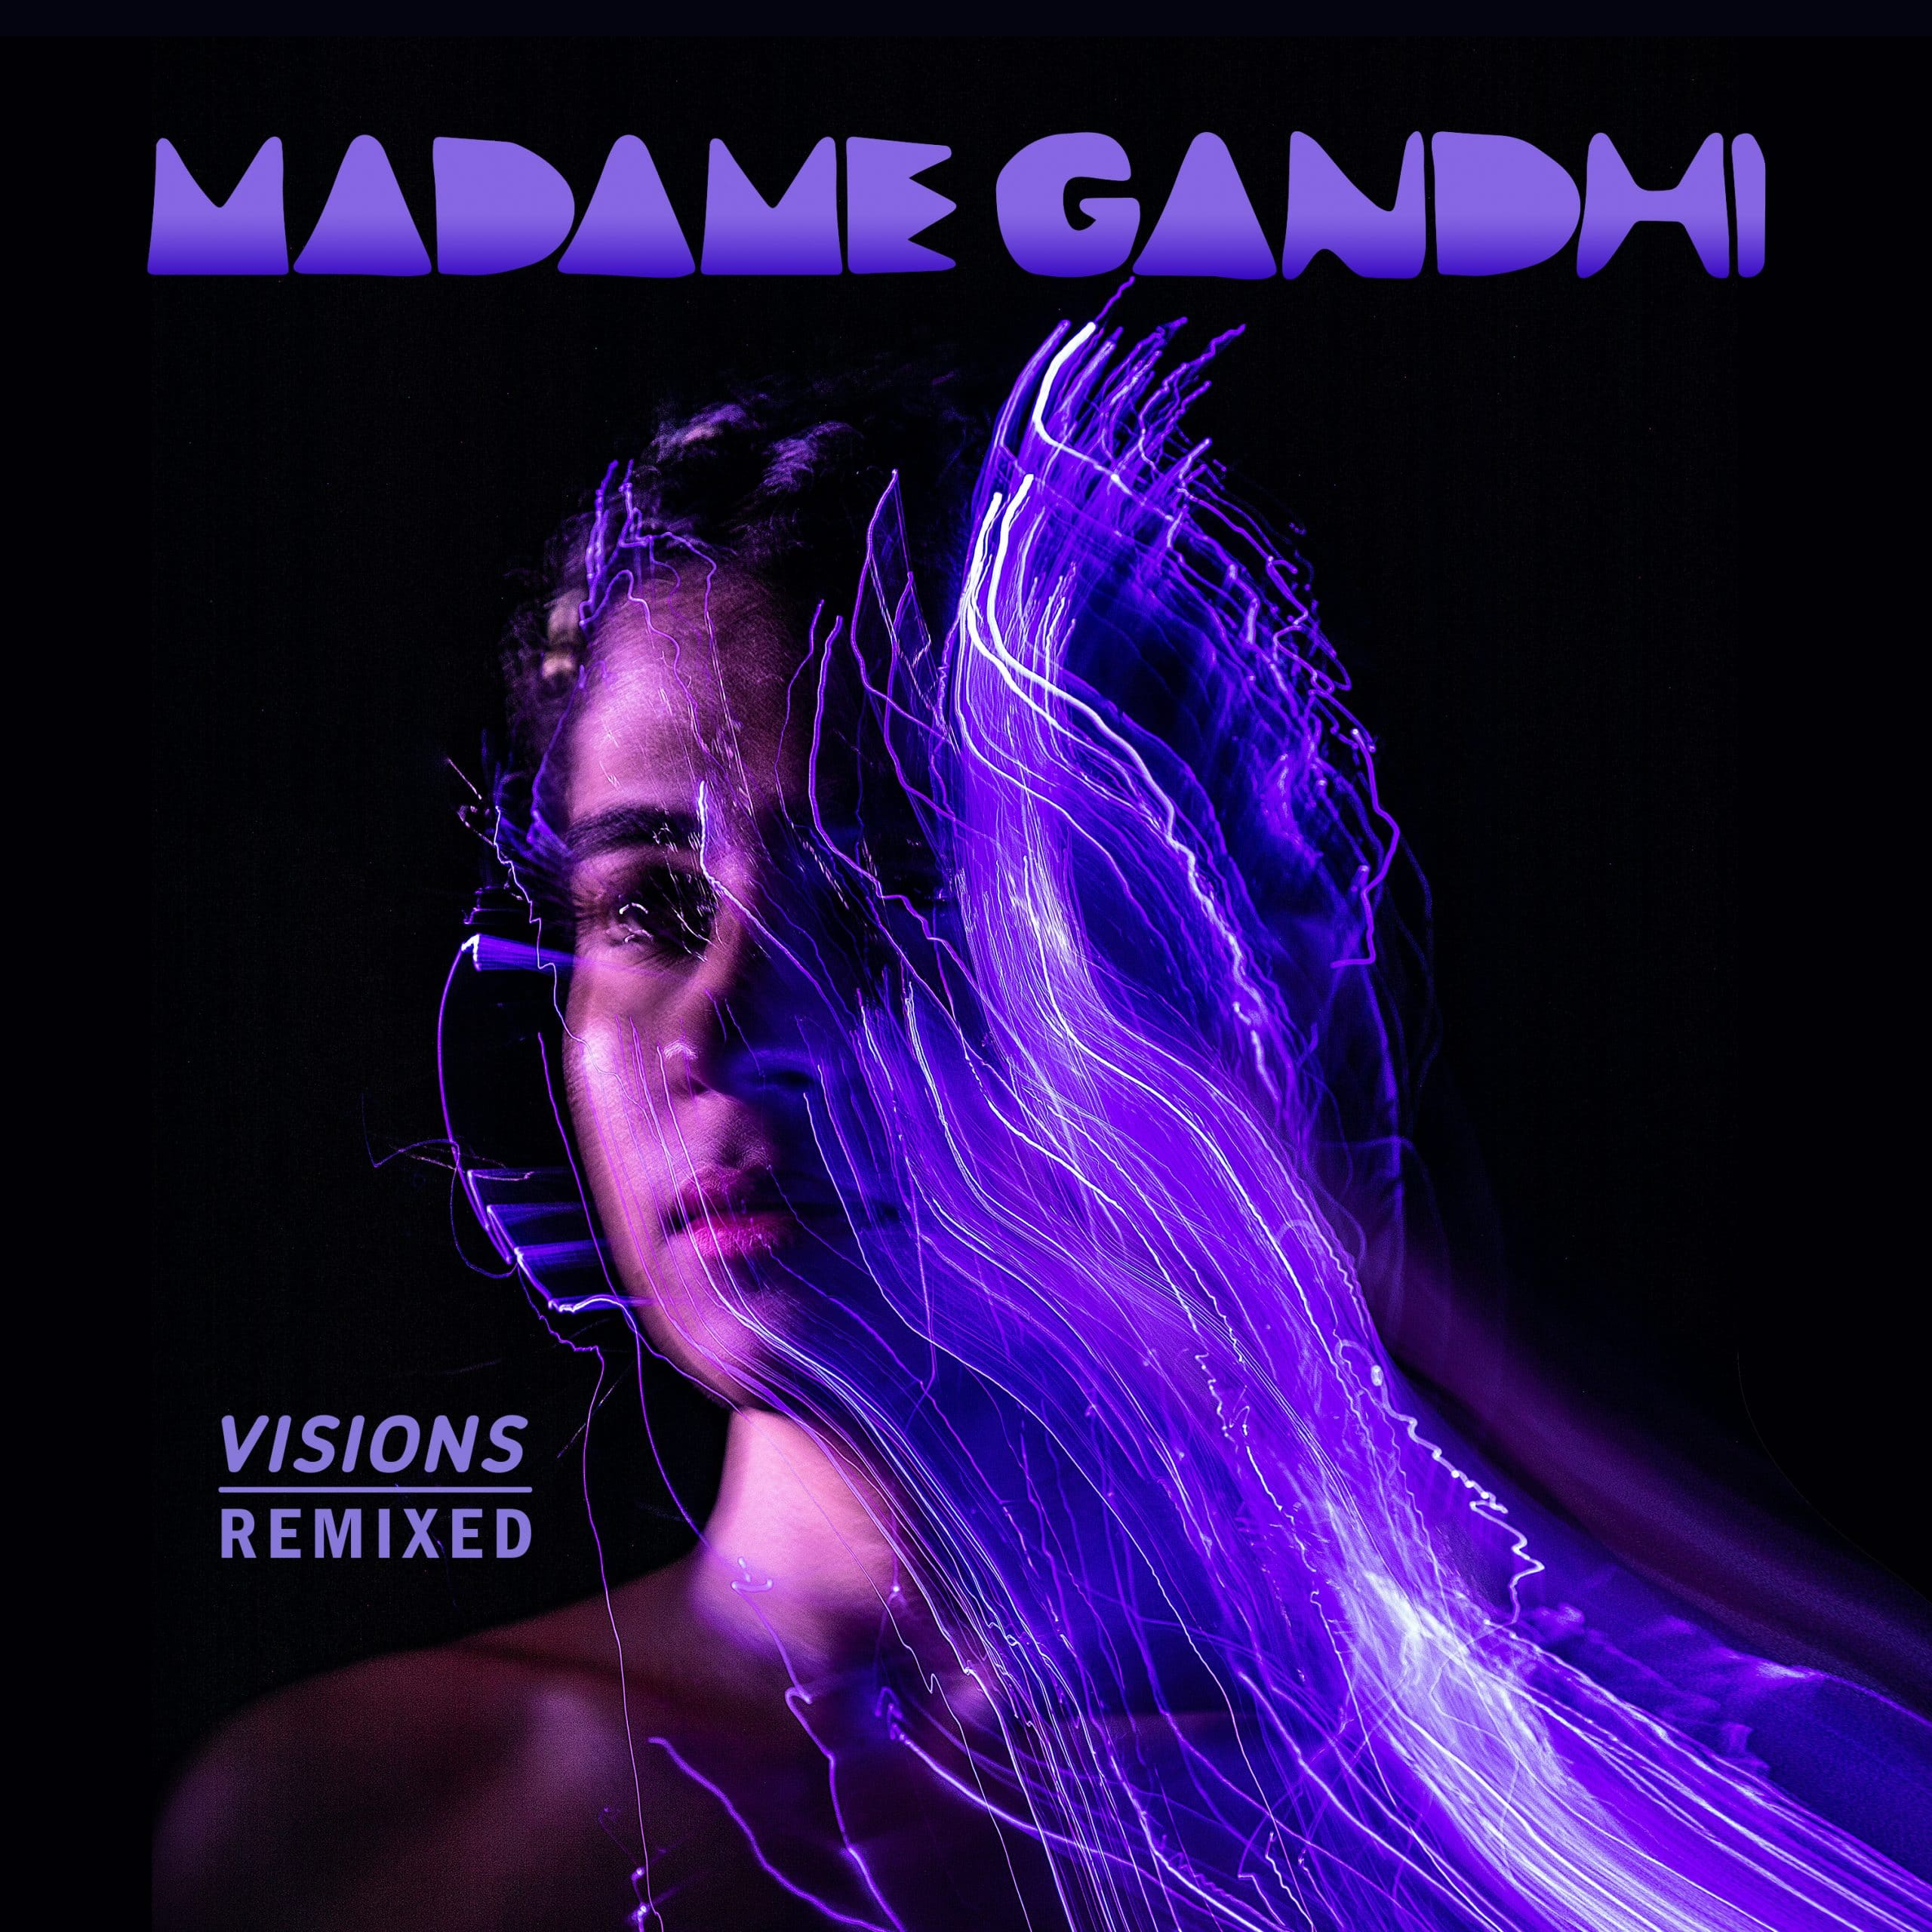 5 Secrets You'll Want to Know About Madame Gandhi